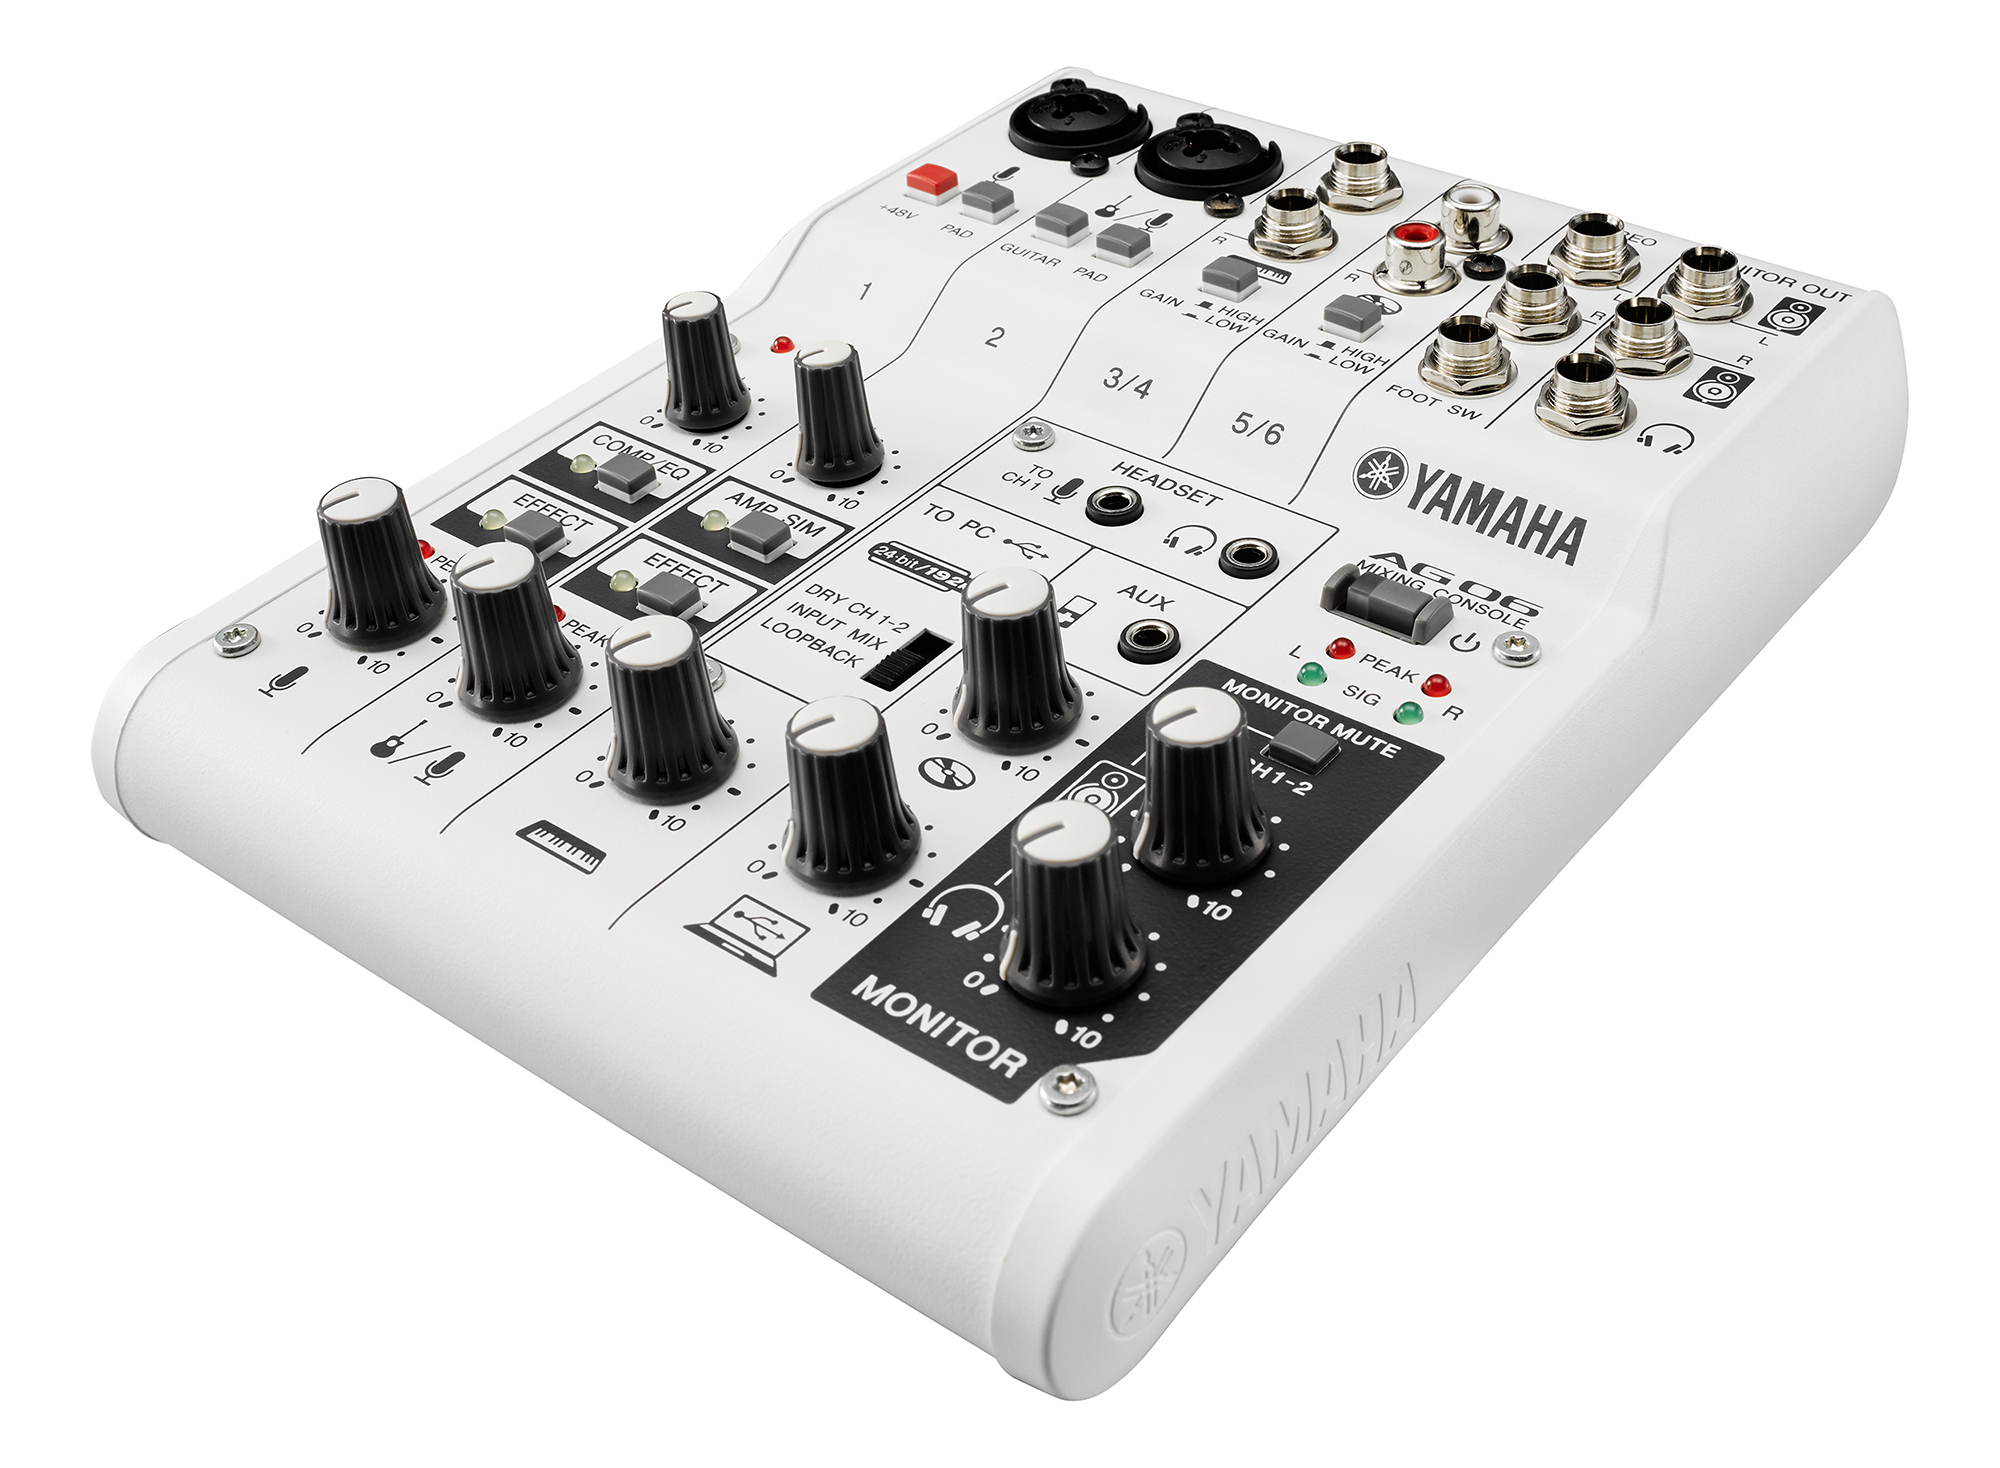 yamaha ag series mixer and usb audio interface routenote